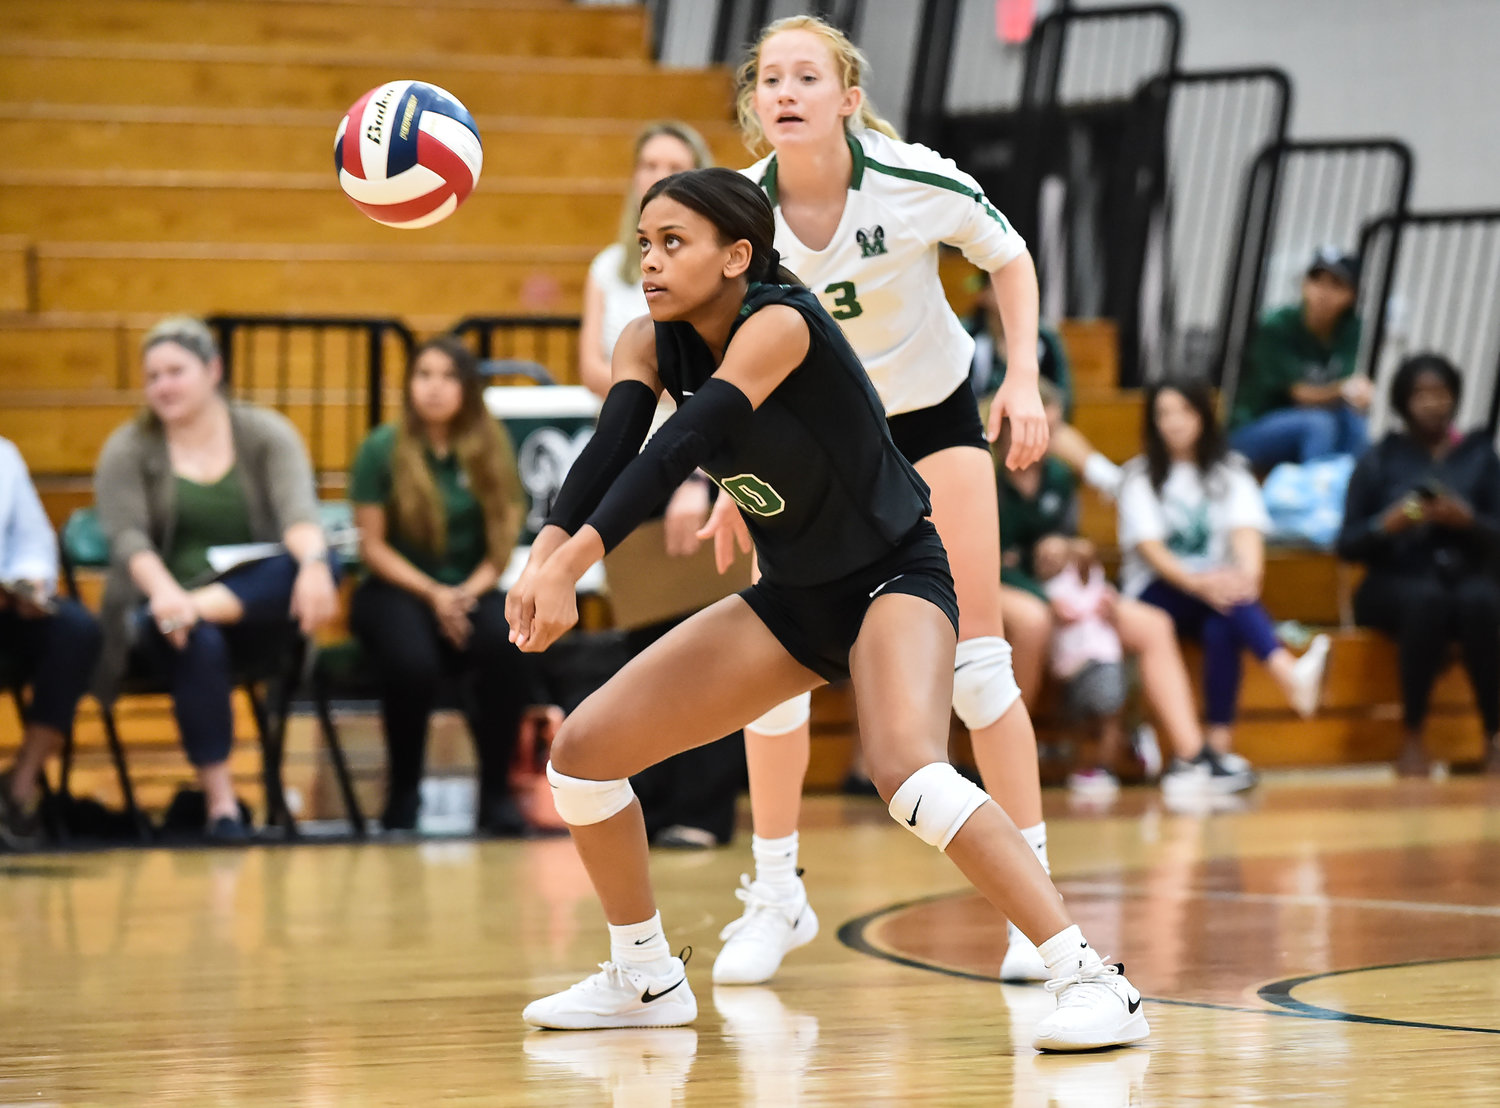 Katy, Tx Sept 3, 2019: Mayde Creek's Jade Smith (10) returns the ball as Mayde Creek's Katie Griese (13) looks on during a game with Westfield at MCHS. (Photo by Mark Goodman - Katy Times